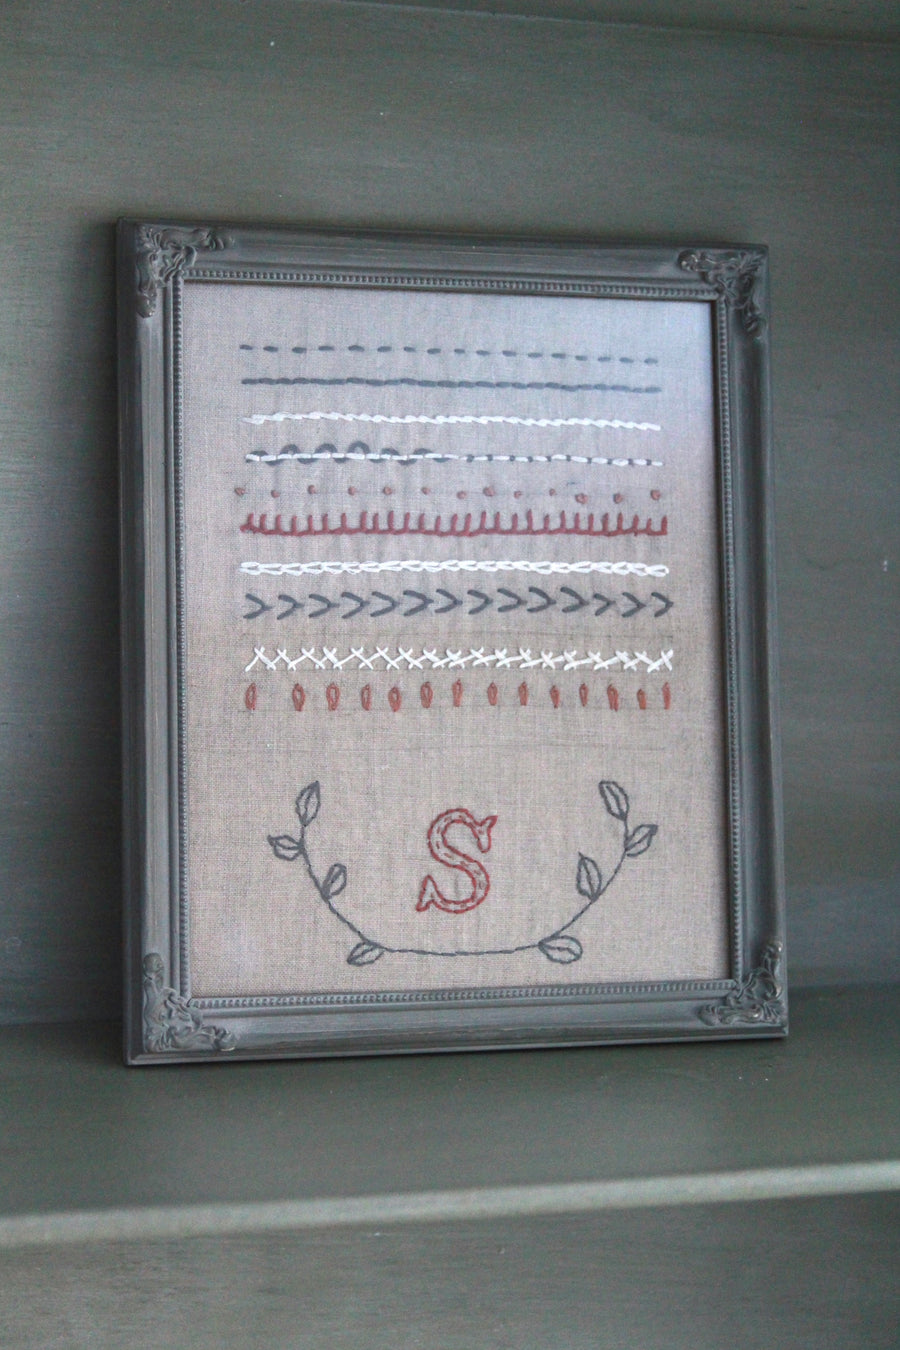 3/27 Friday Classic Embroidery Sampler